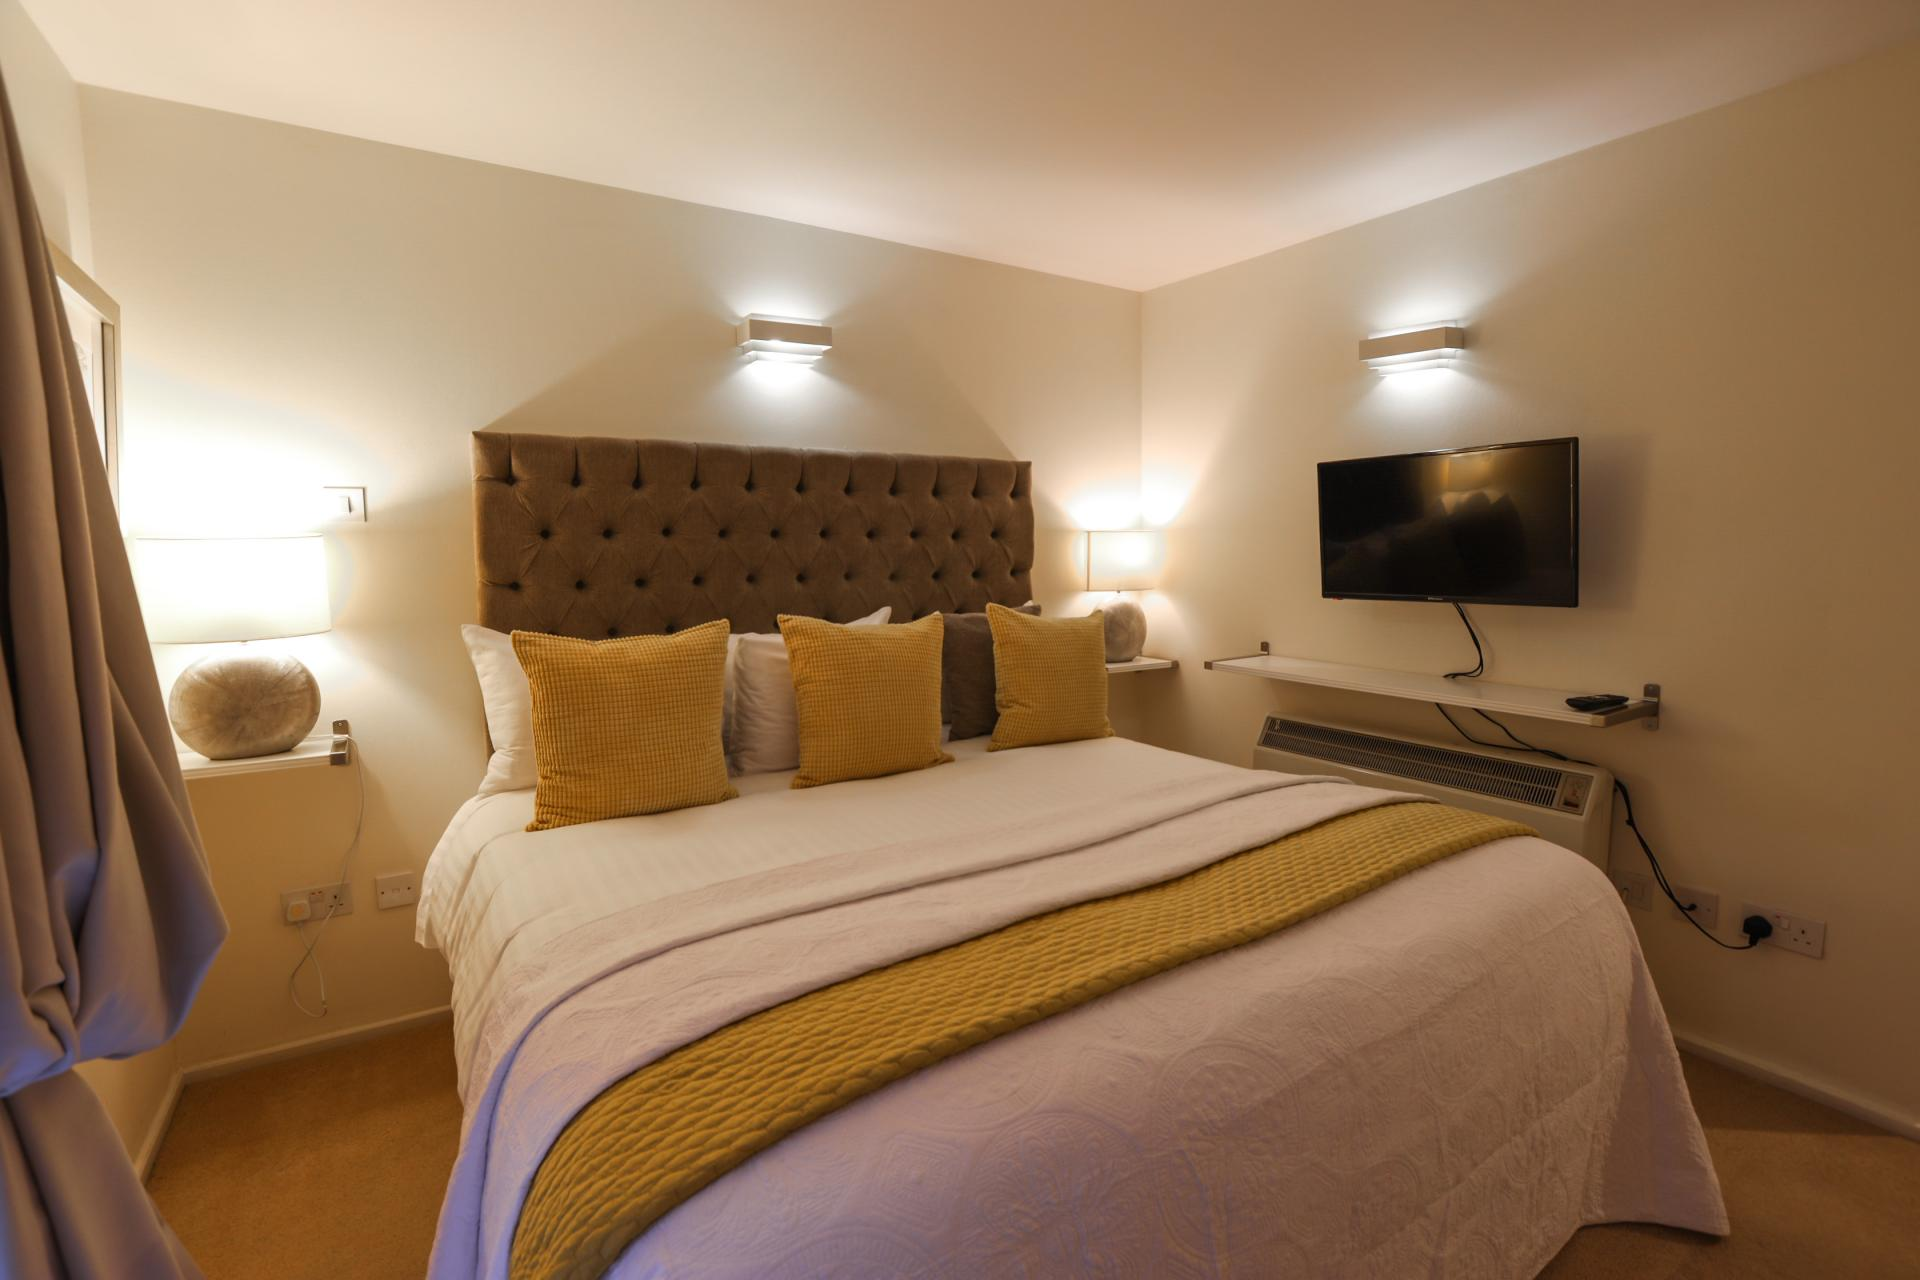 Cosy bedroom at 116 Point West Apartments, South Kensington, London - Citybase Apartments